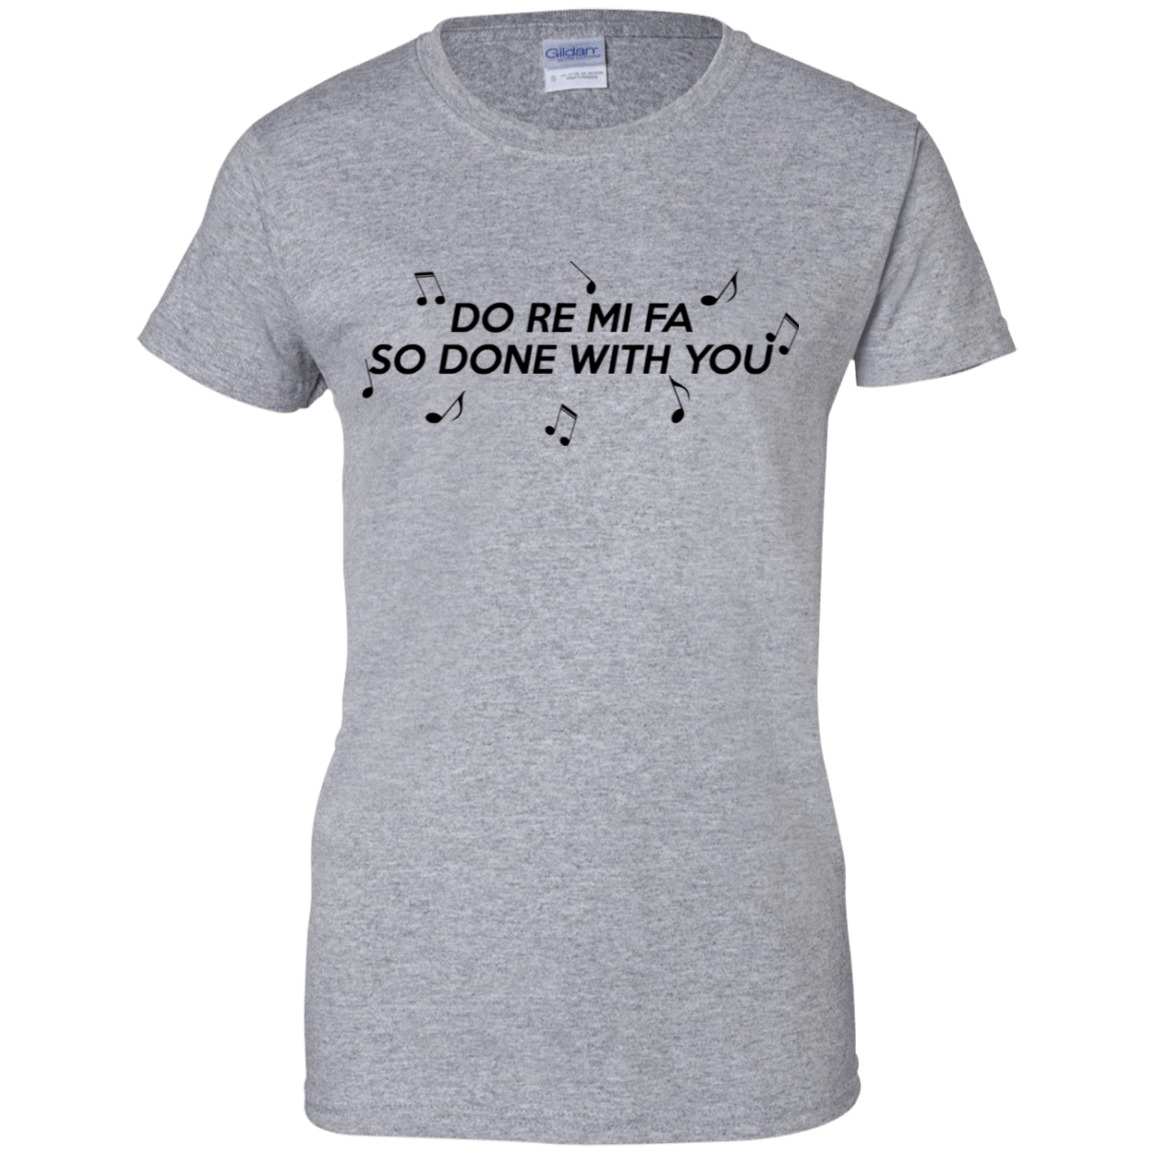 Do Re Mi Fa So Done With You 939-9265-71995122-44821 - Tee Ript